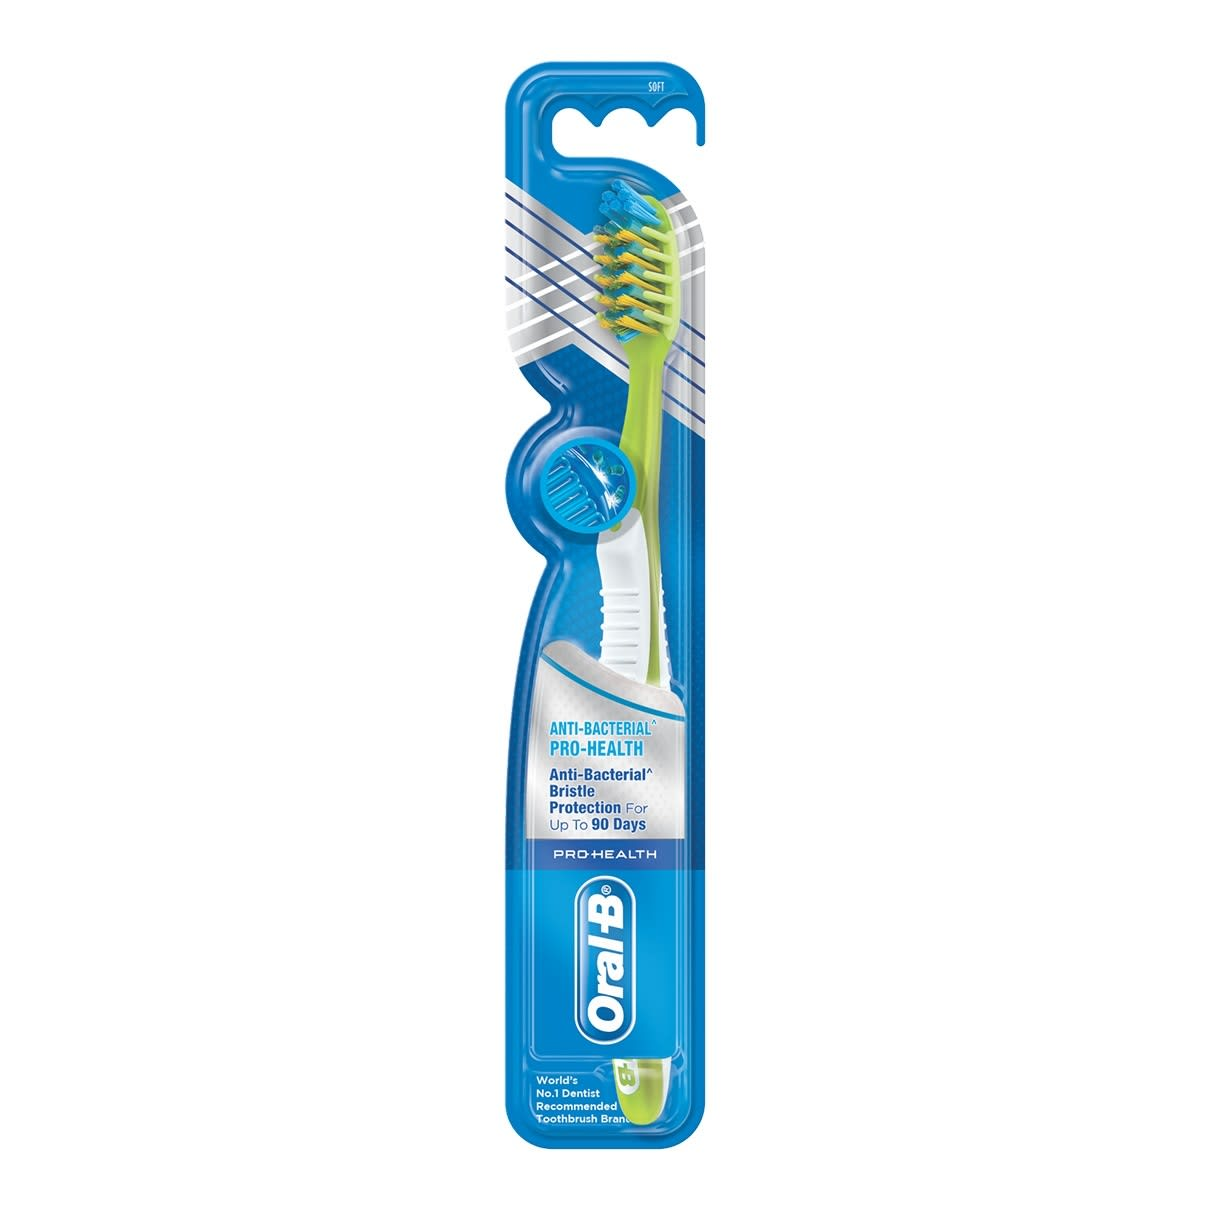 Oral-B Pro-Health Anti-Bacterial toothbrush